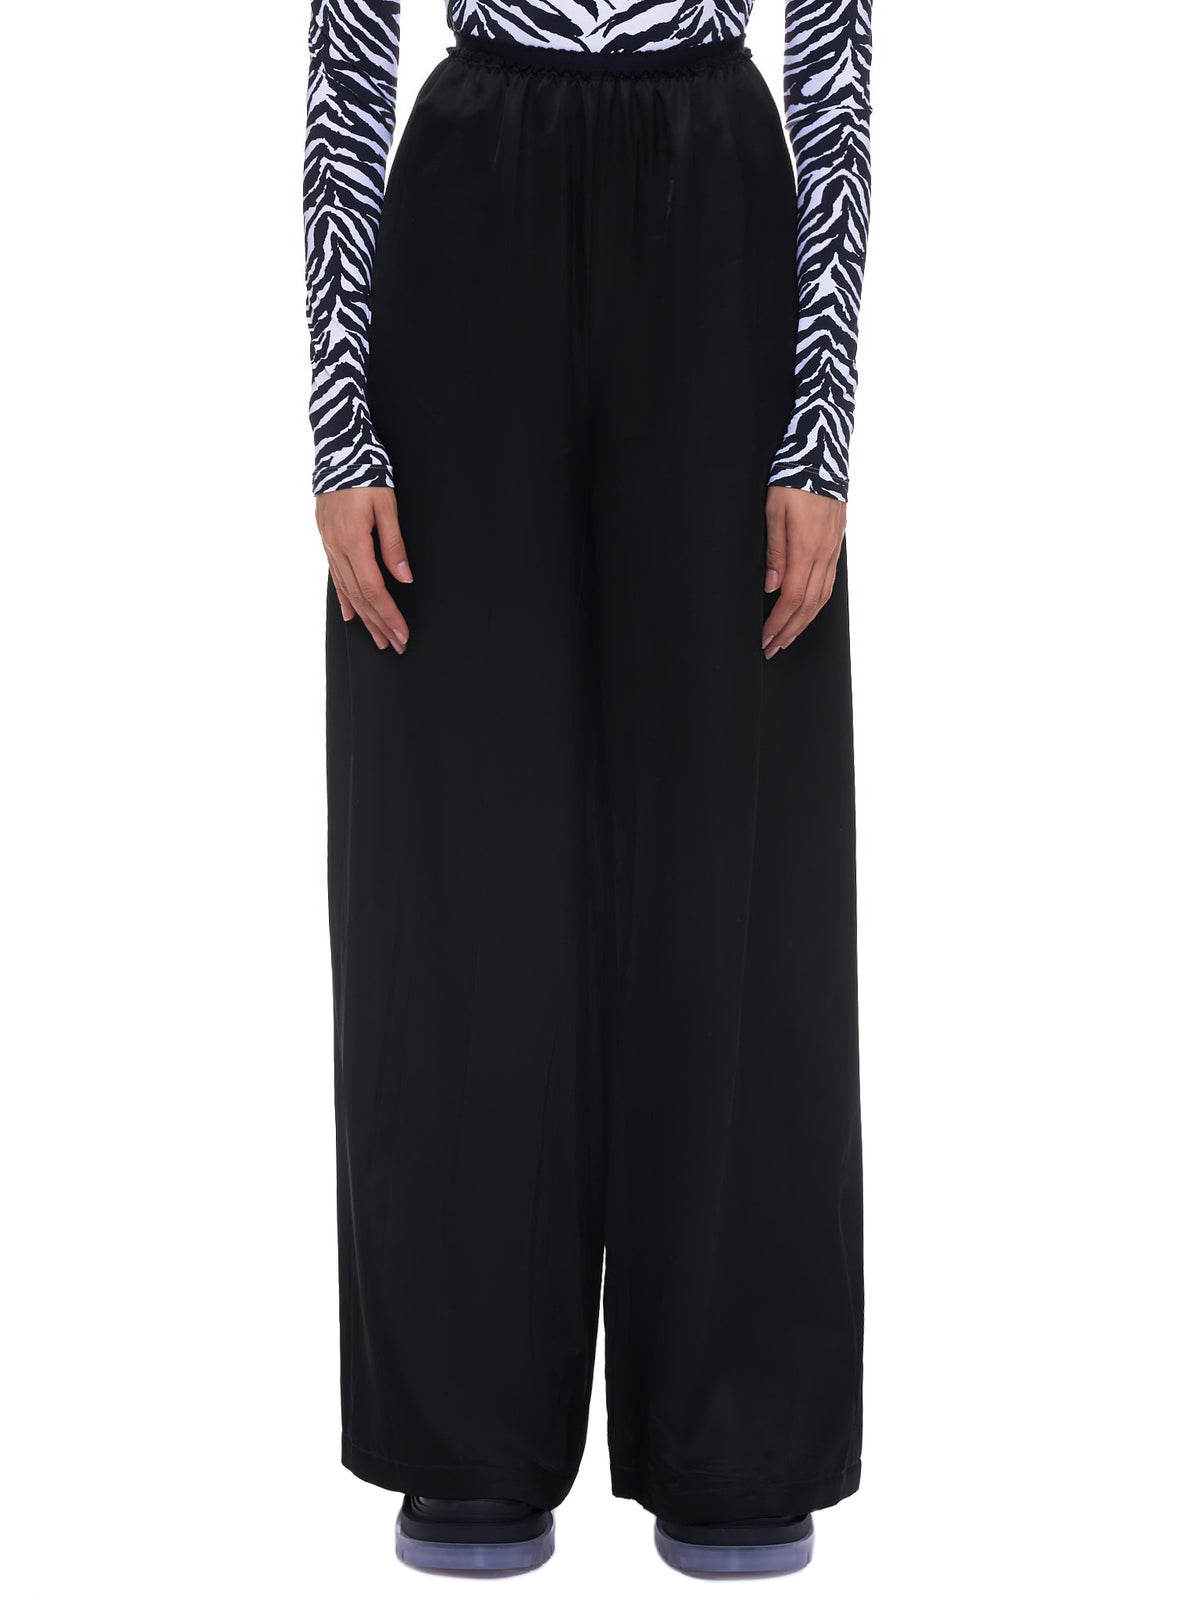 MM6 Maison Margiela Trousers | H.Lorenzo - front